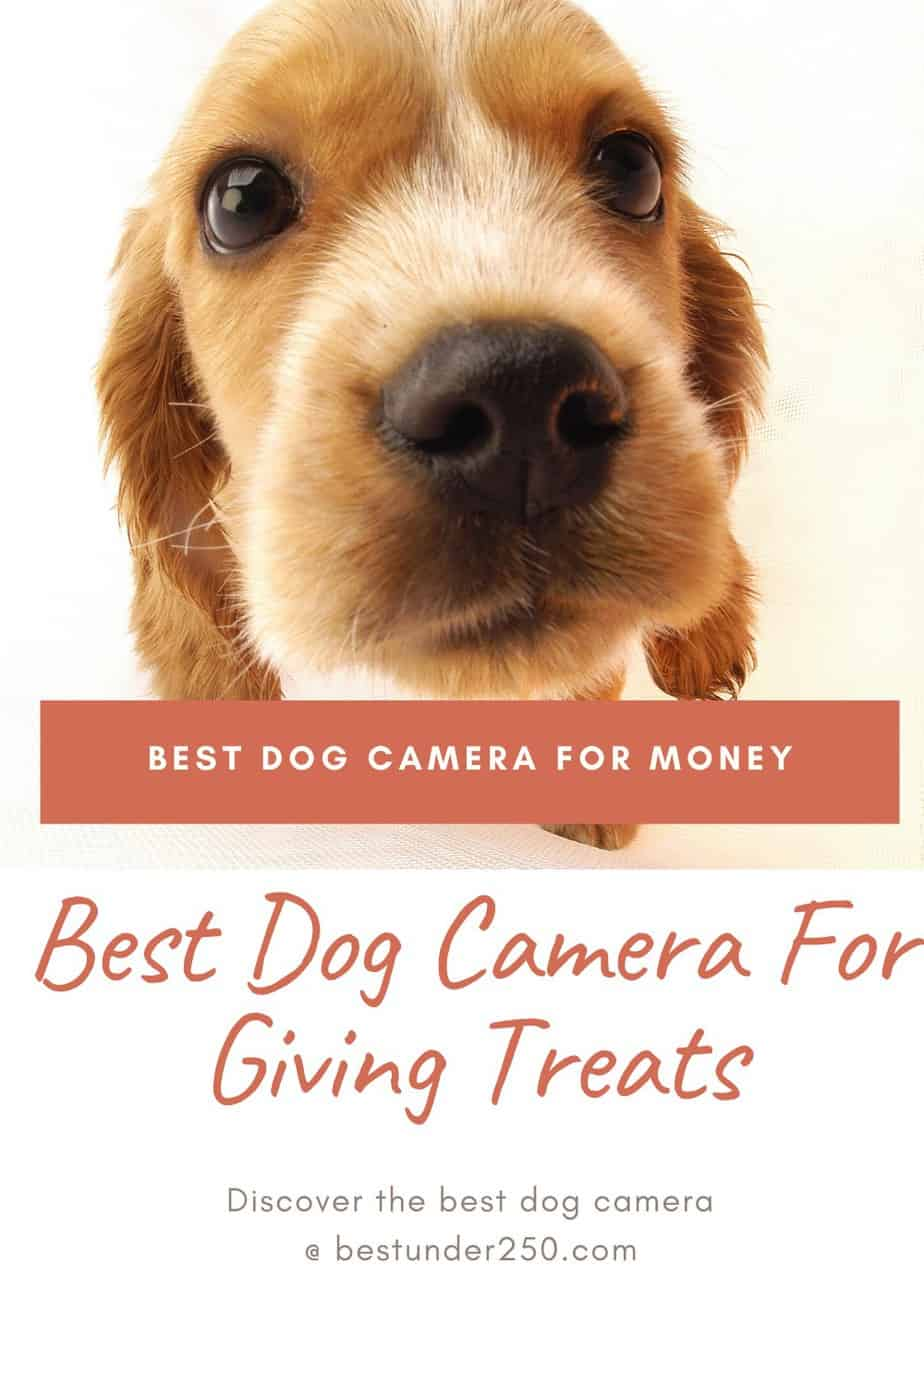 Best dog camera to watch your dog remotely